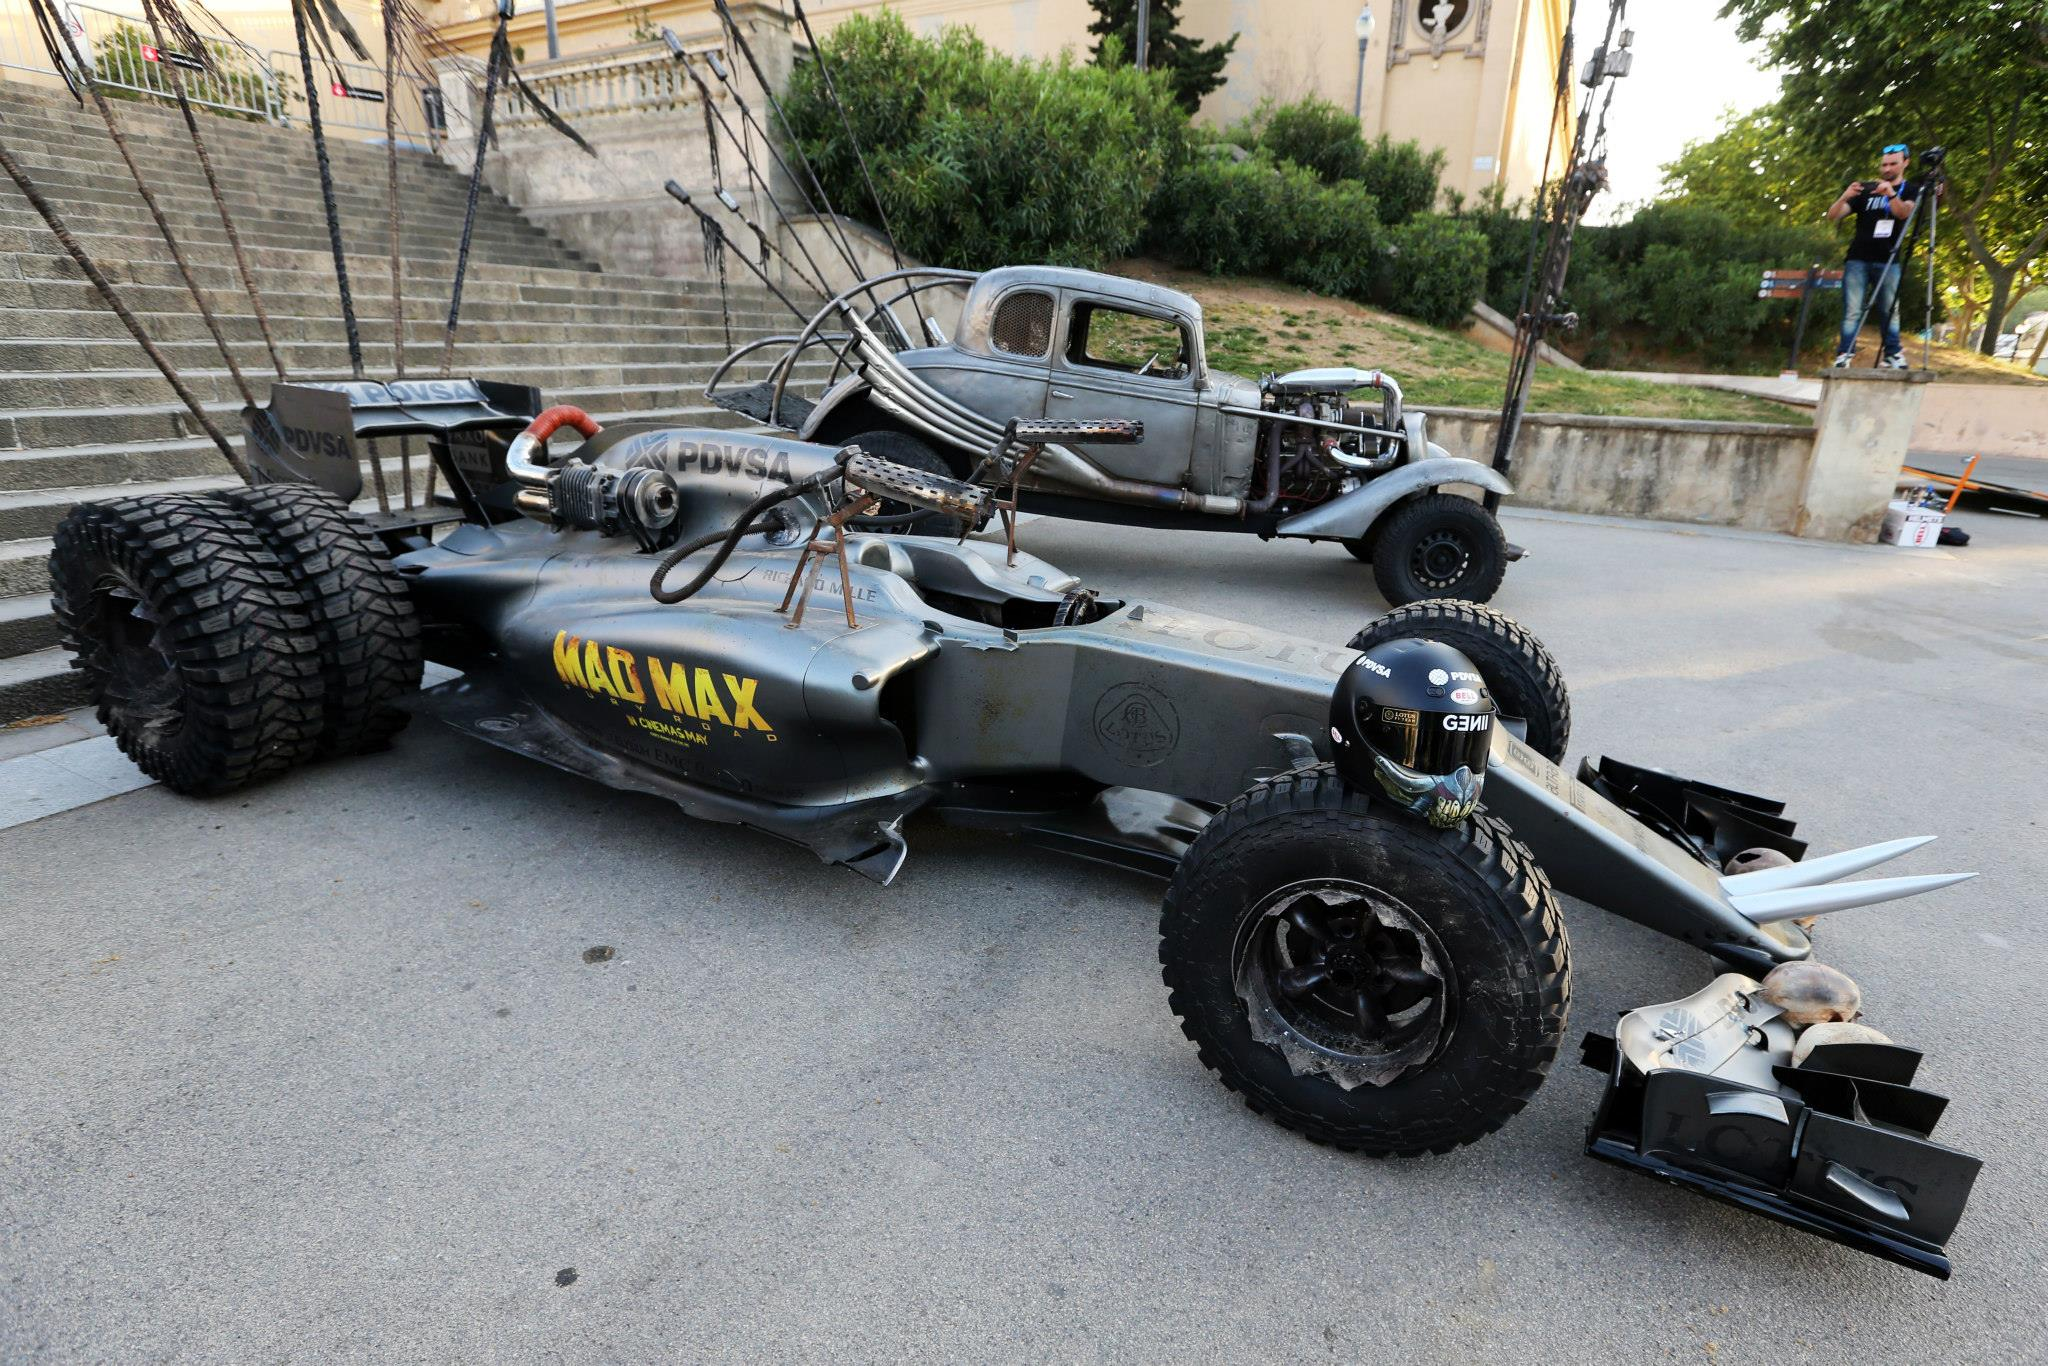 Lotus F1 Team Creates Awesome \'Mad Max\' Homage F1 Car